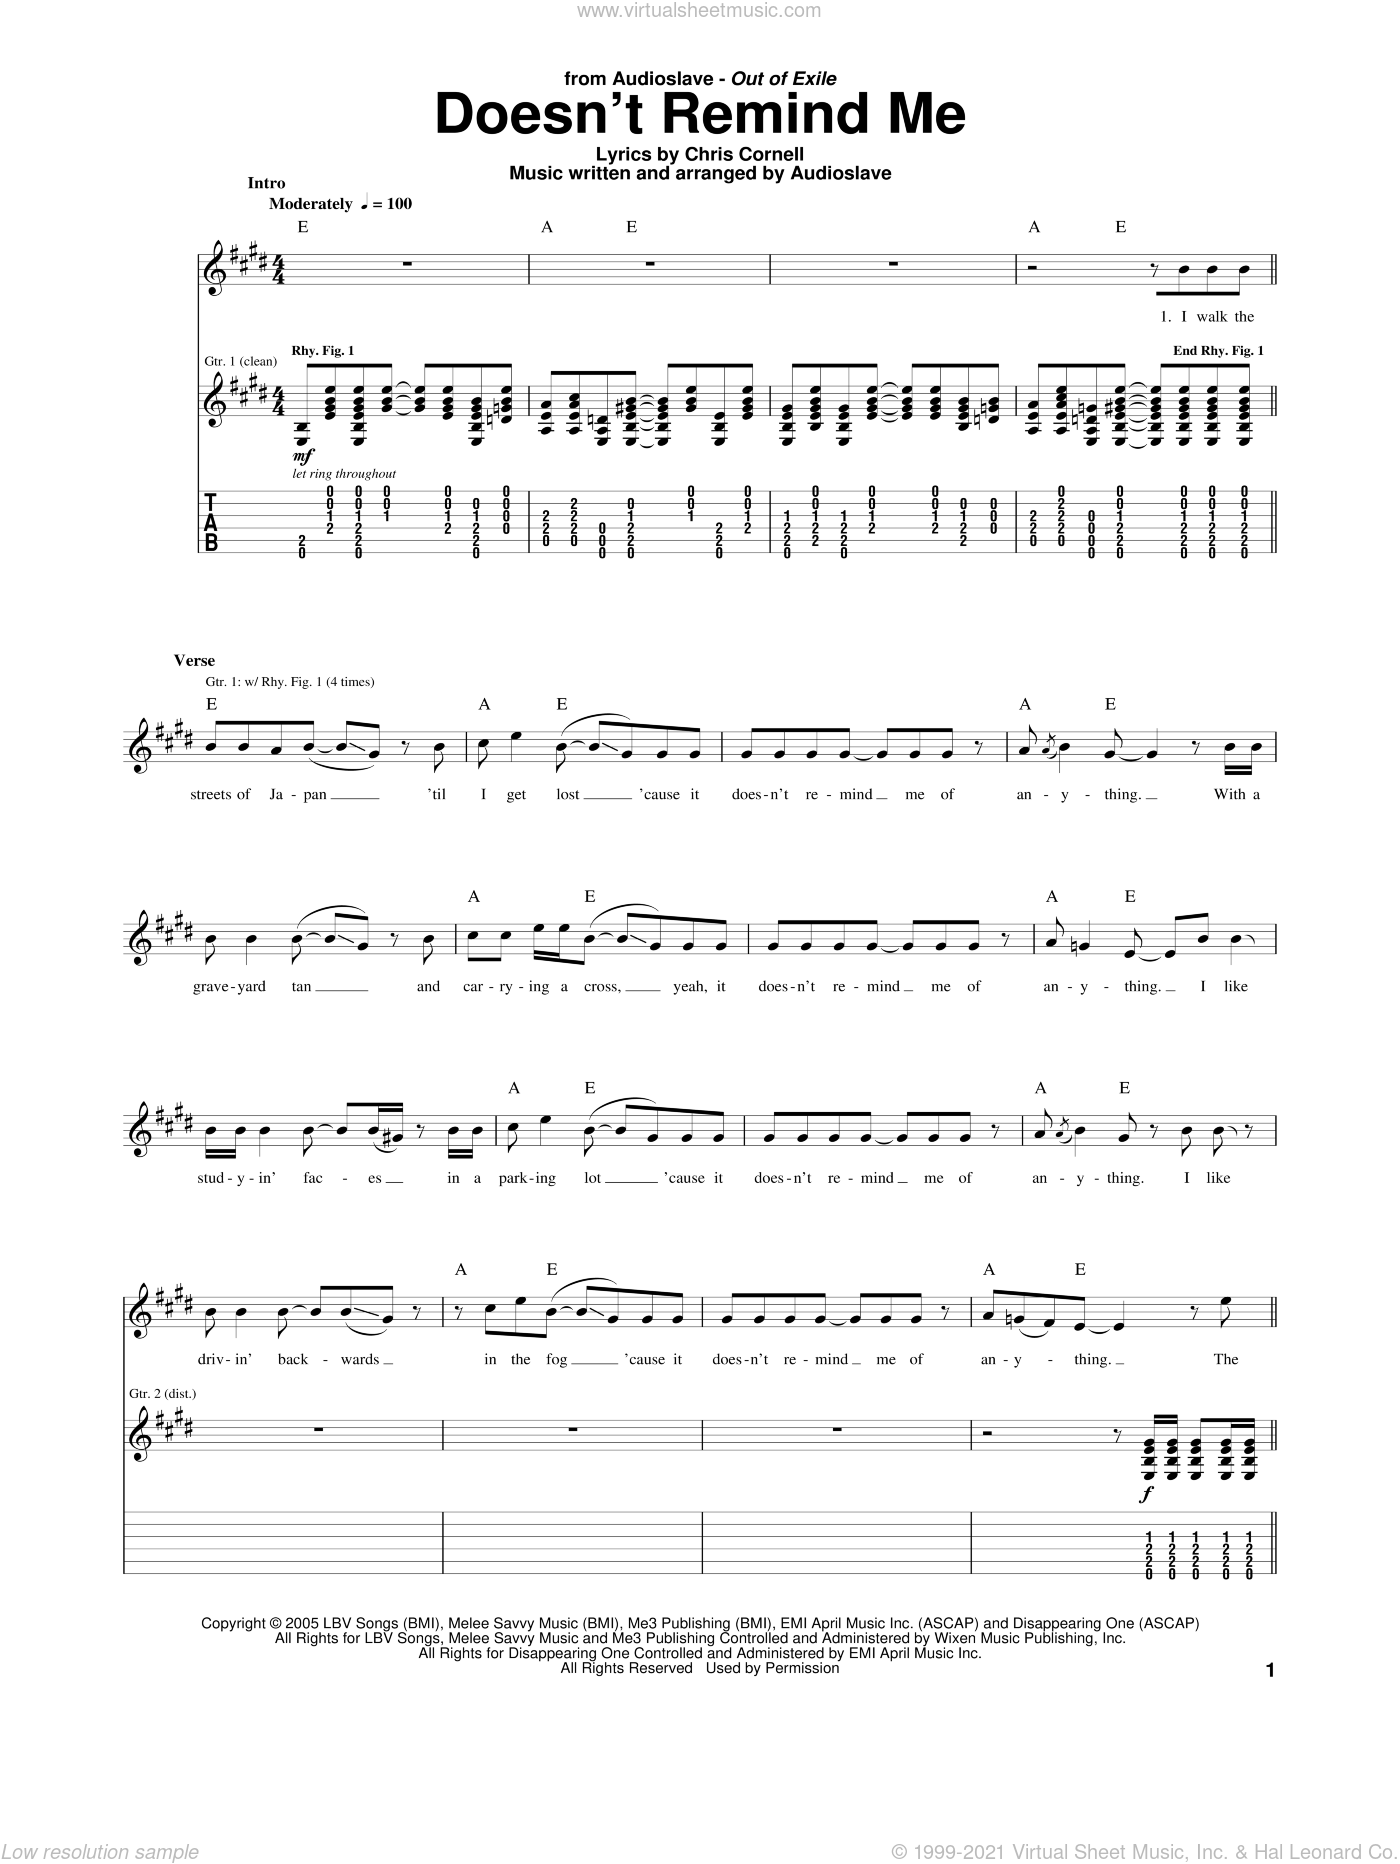 Doesn't Remind Me sheet music for guitar (tablature) by Audioslave and Chris Cornell, intermediate skill level